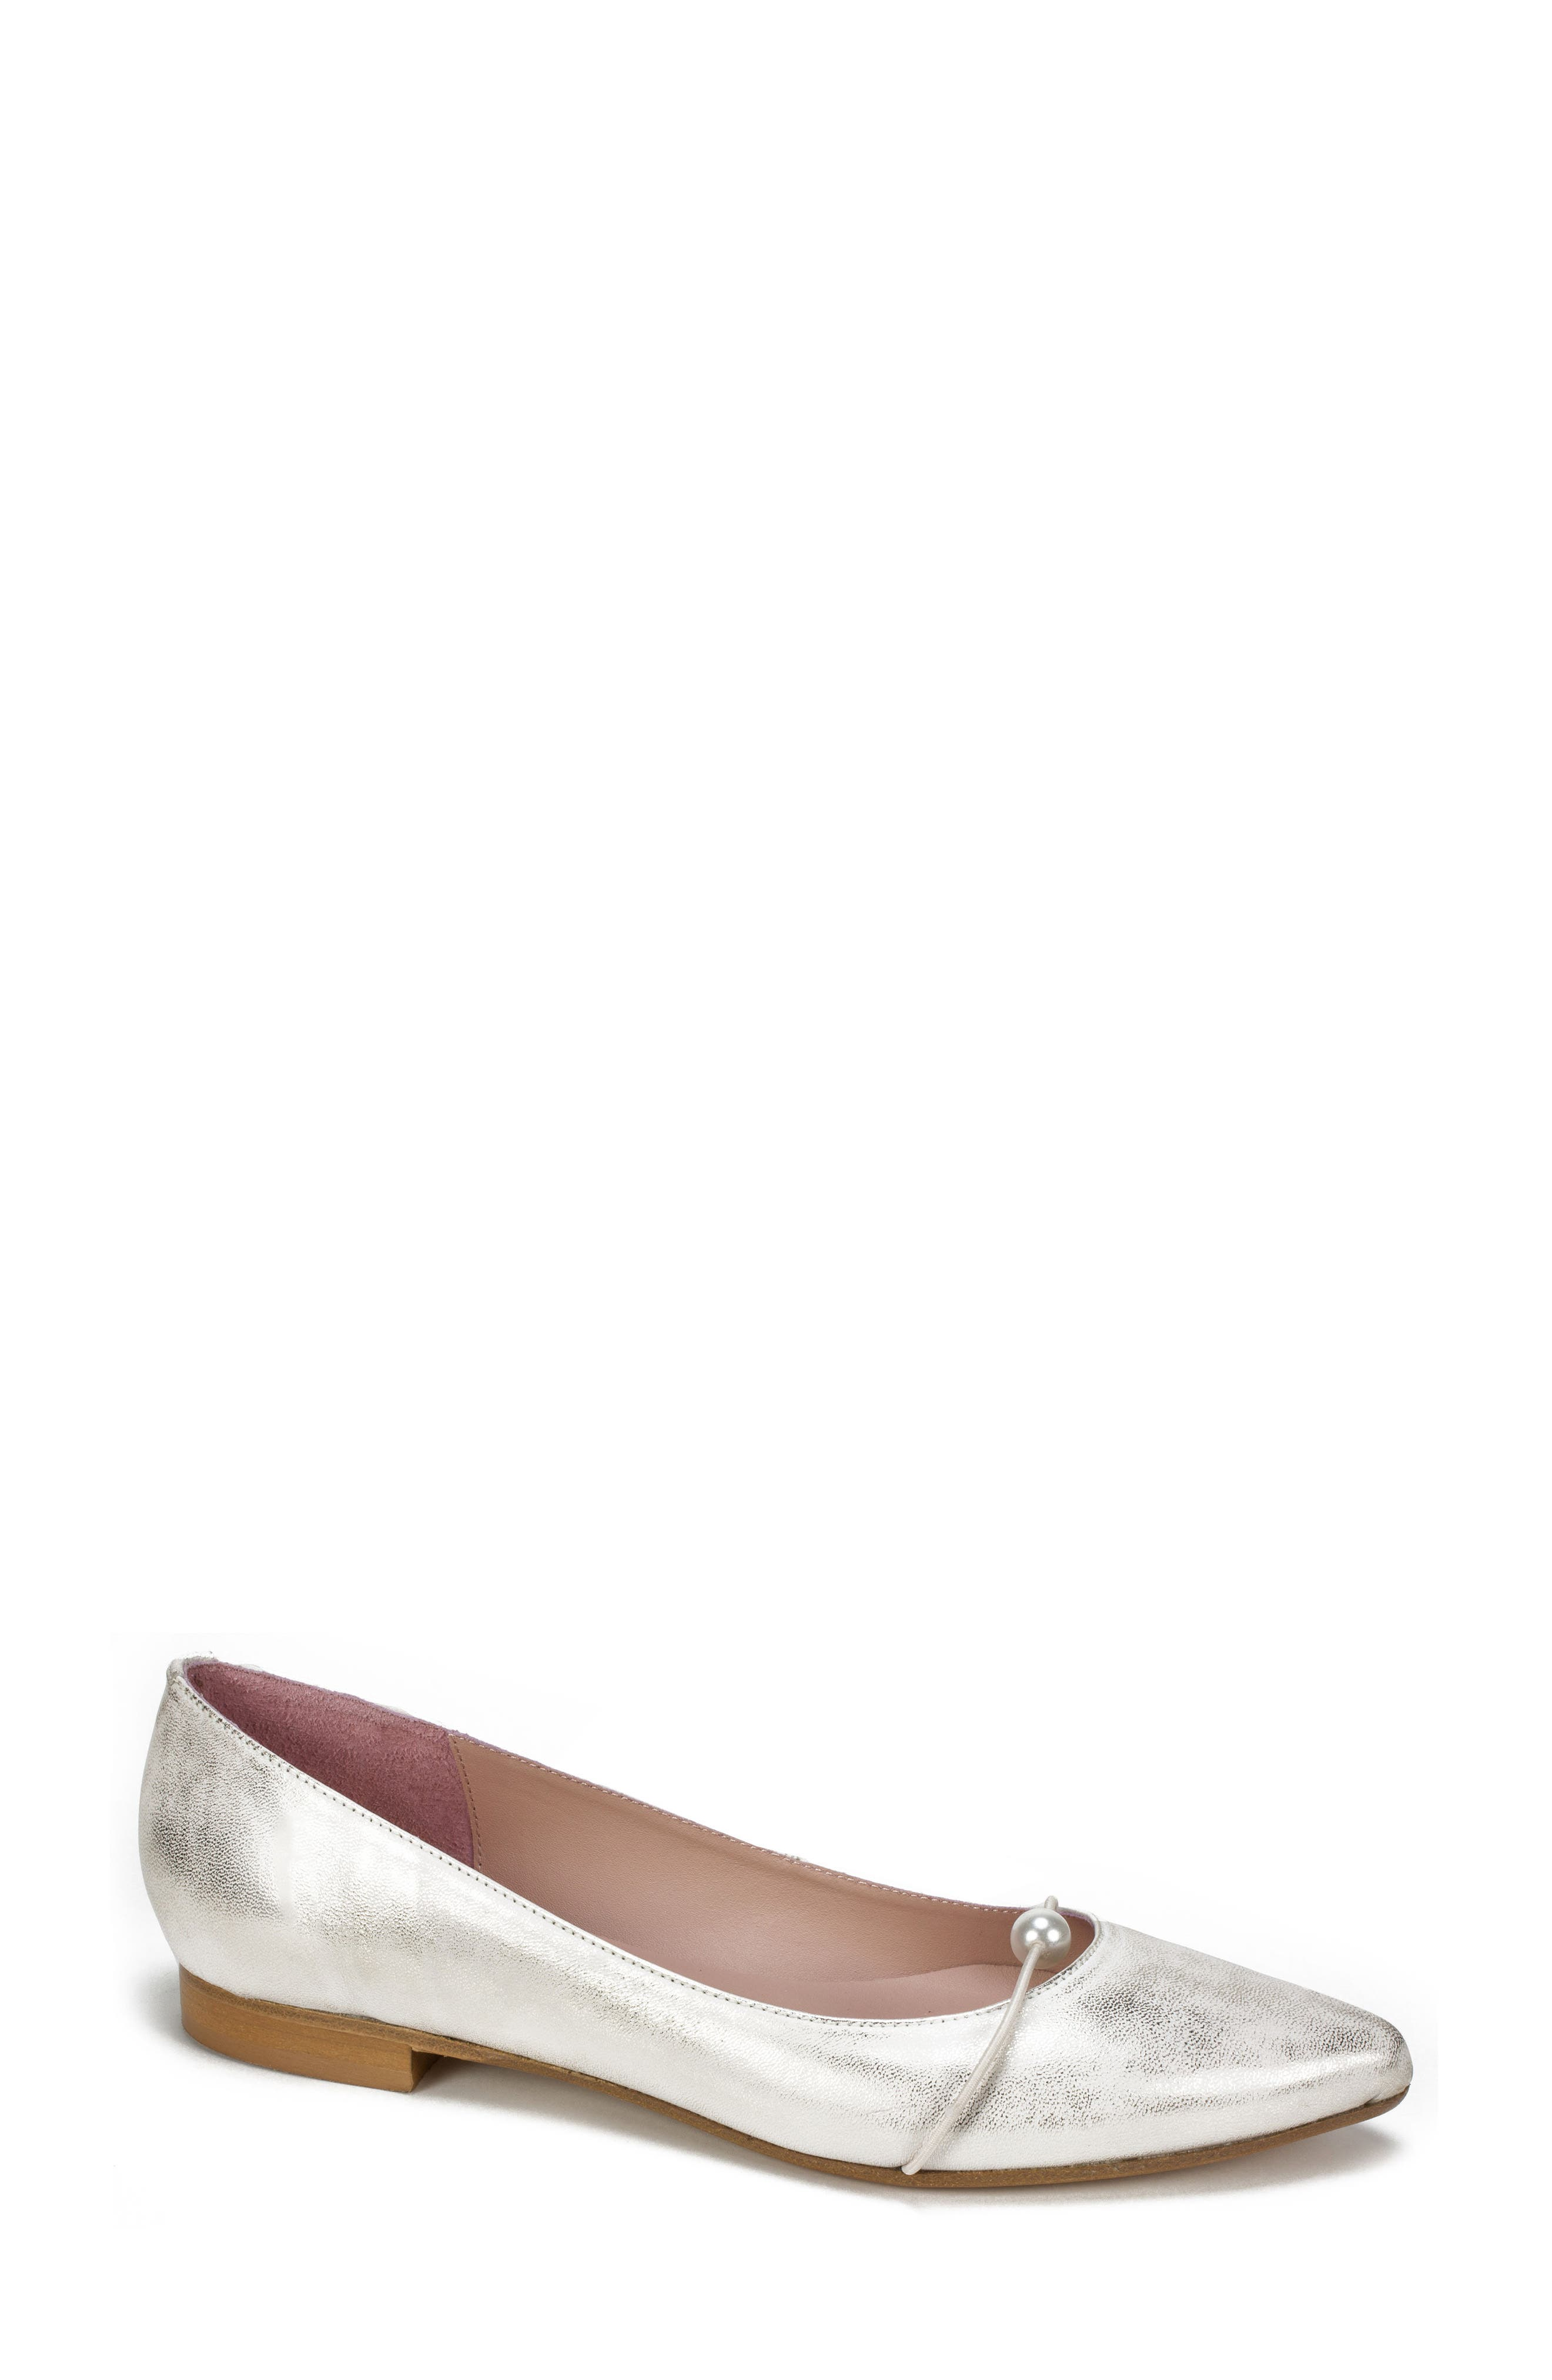 Kaelyn Flat,                         Main,                         color, Platinum Leather